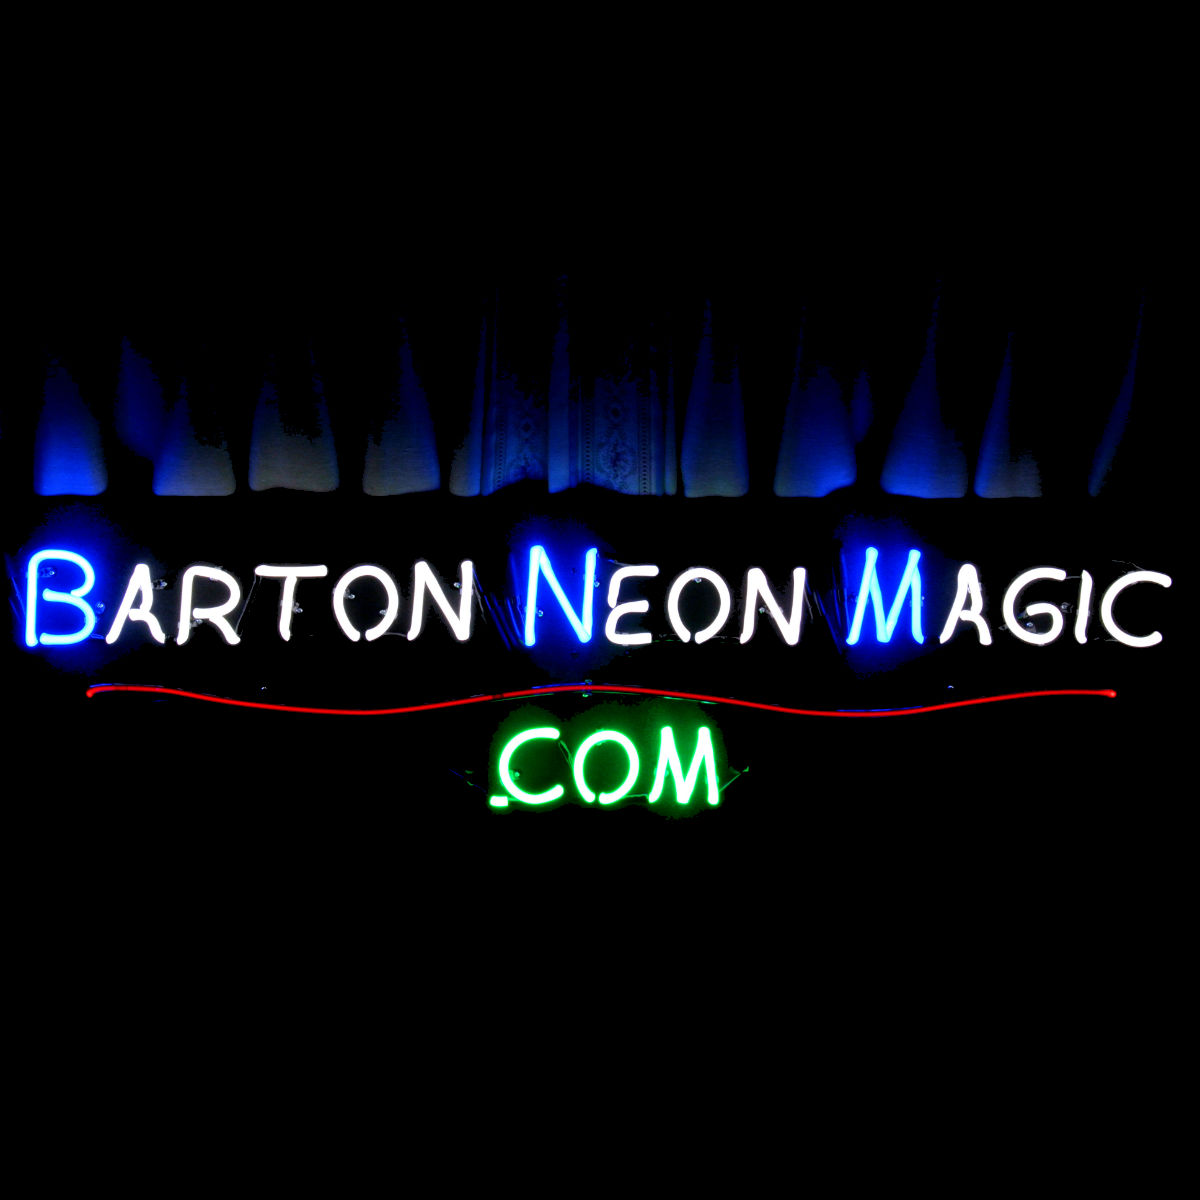 UNIQUE DESIGNER LIGHTING by John Barton - BartonNeonMagic.com